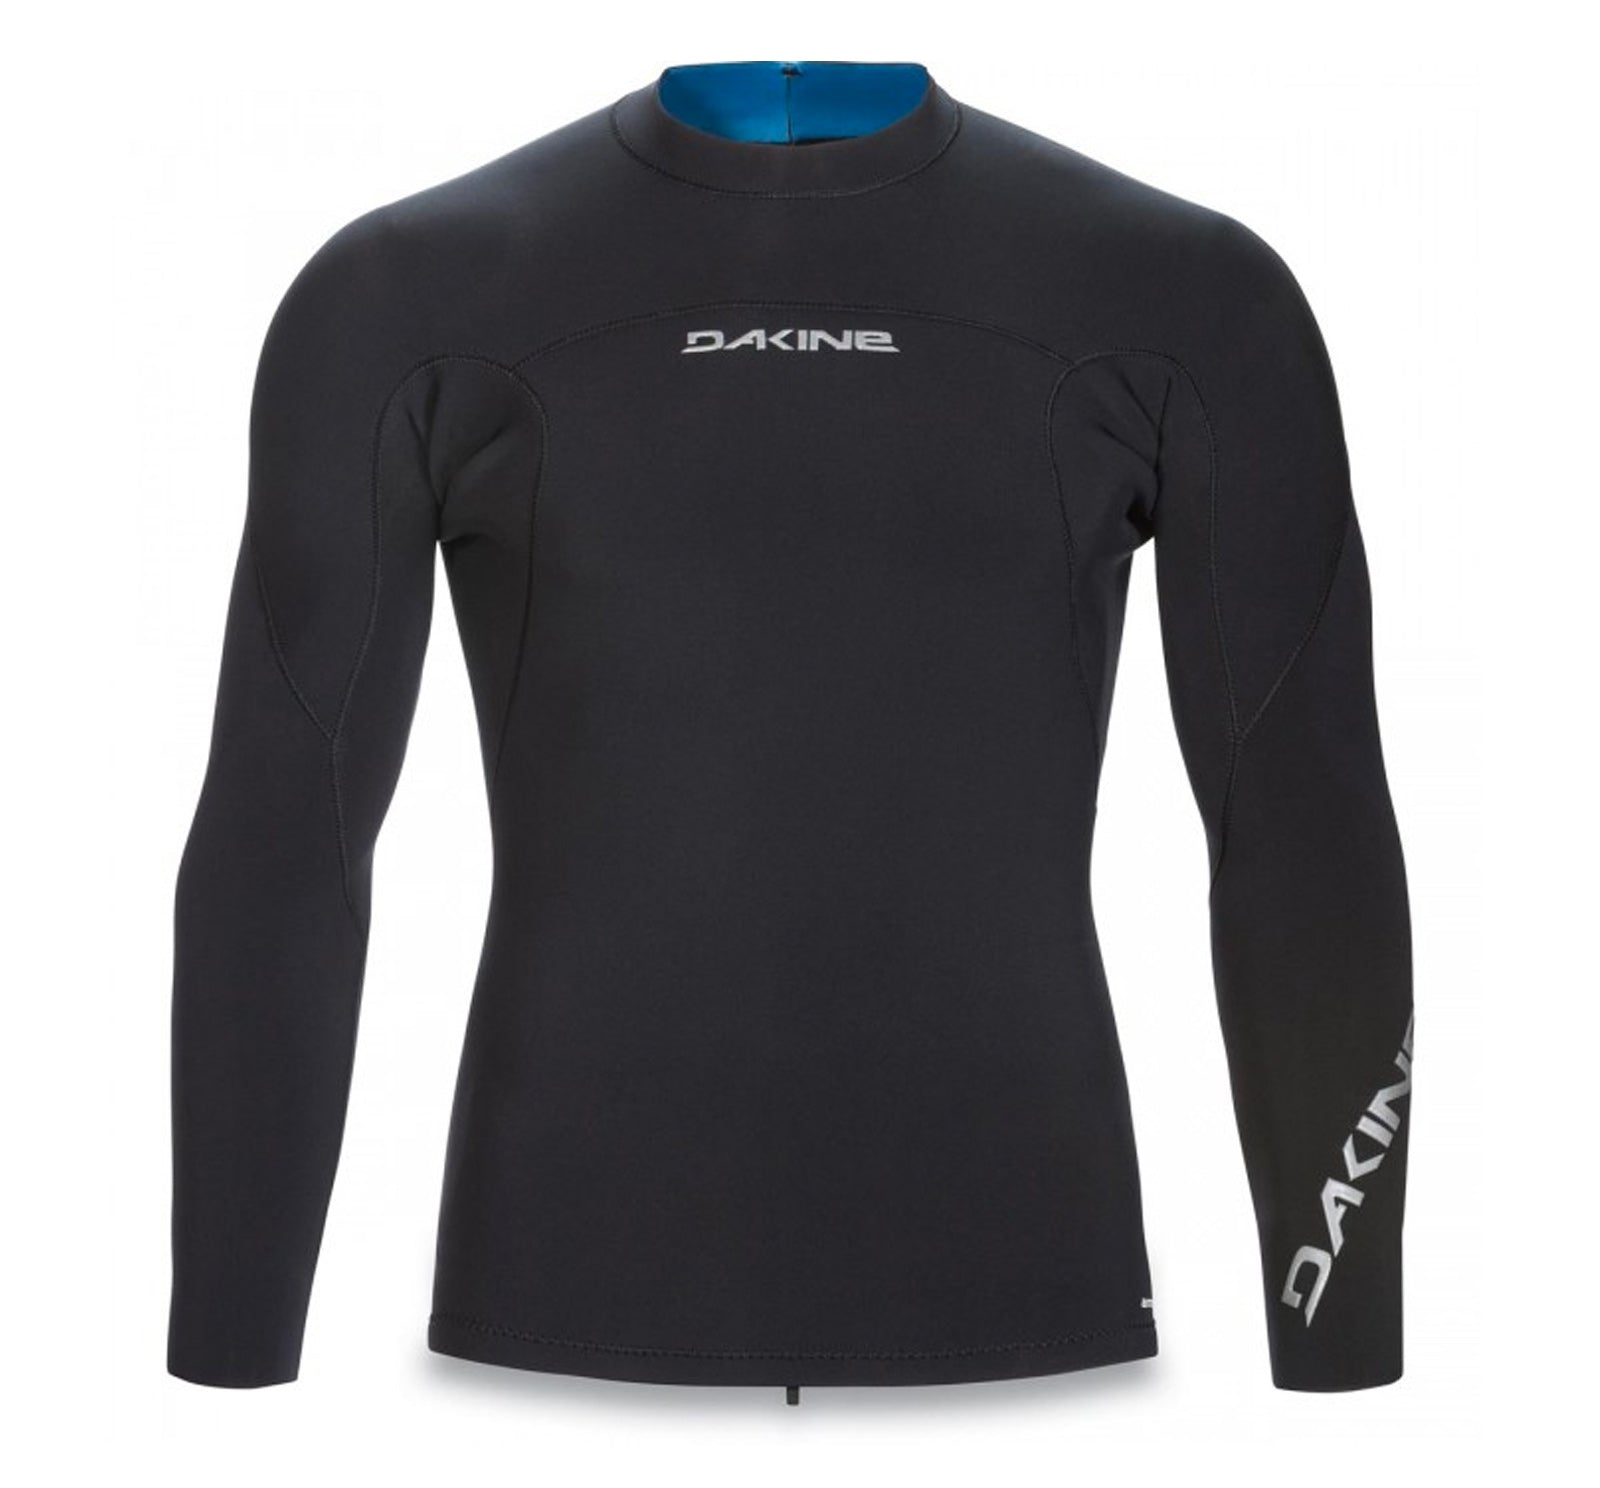 Dakine Neo 2mm Men's L/S Wetsuit Jacket